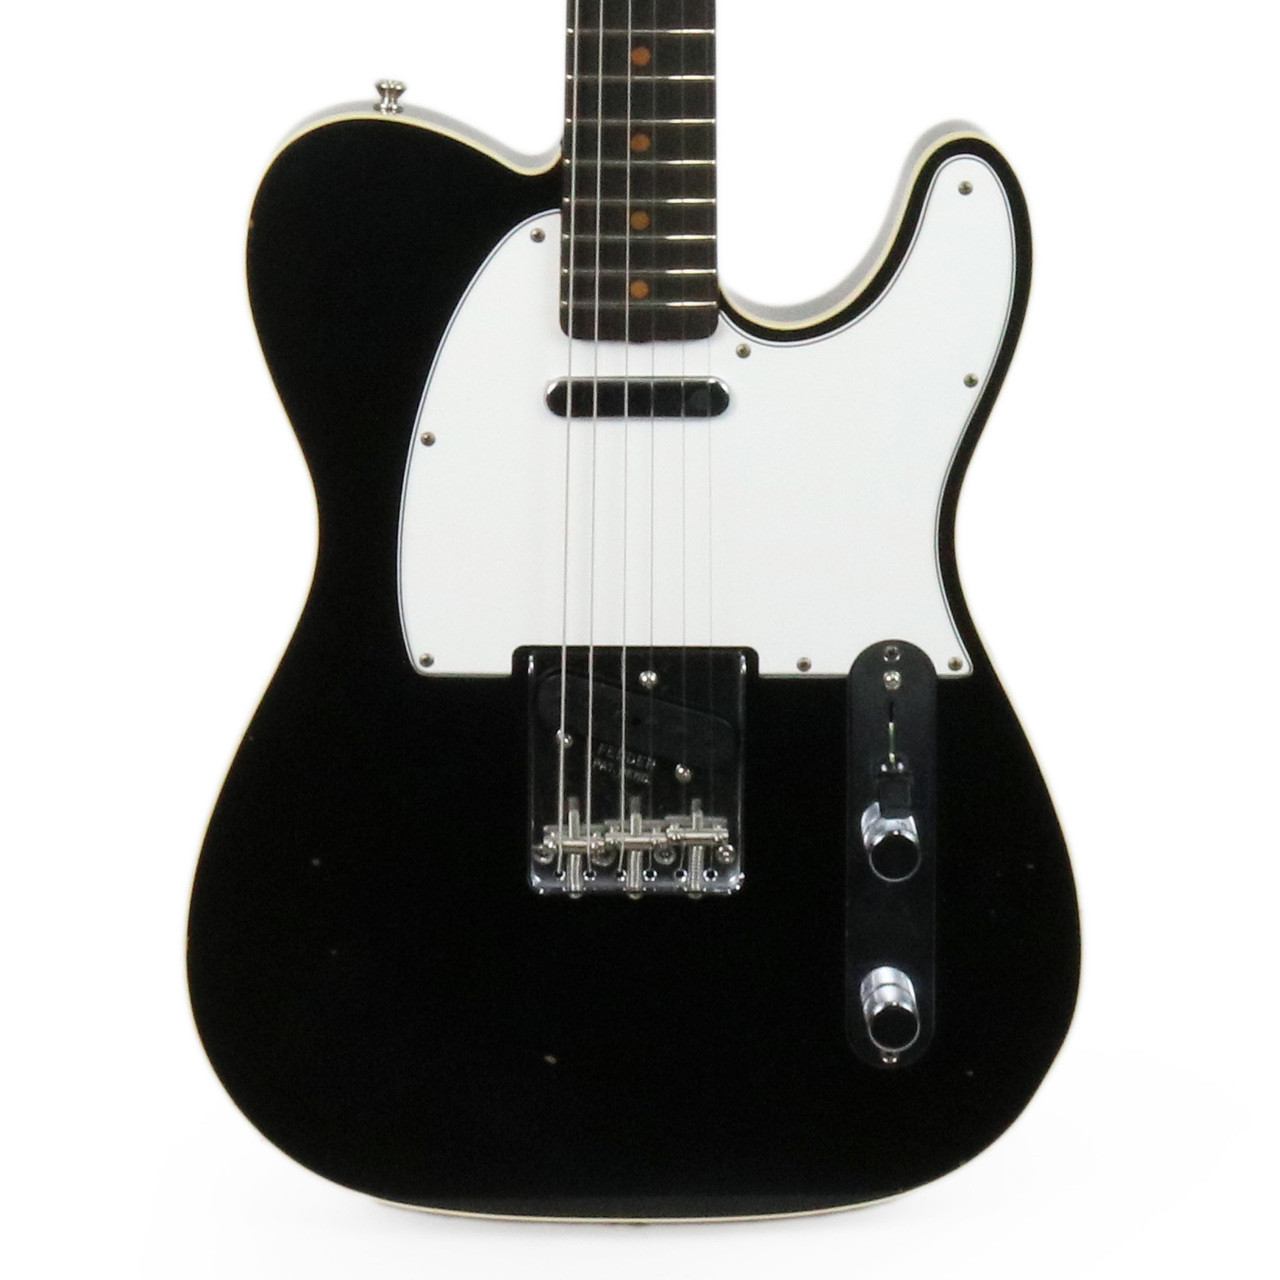 Fender Custom Shop 63 Journeyman Relic Telecaster In Aged Black